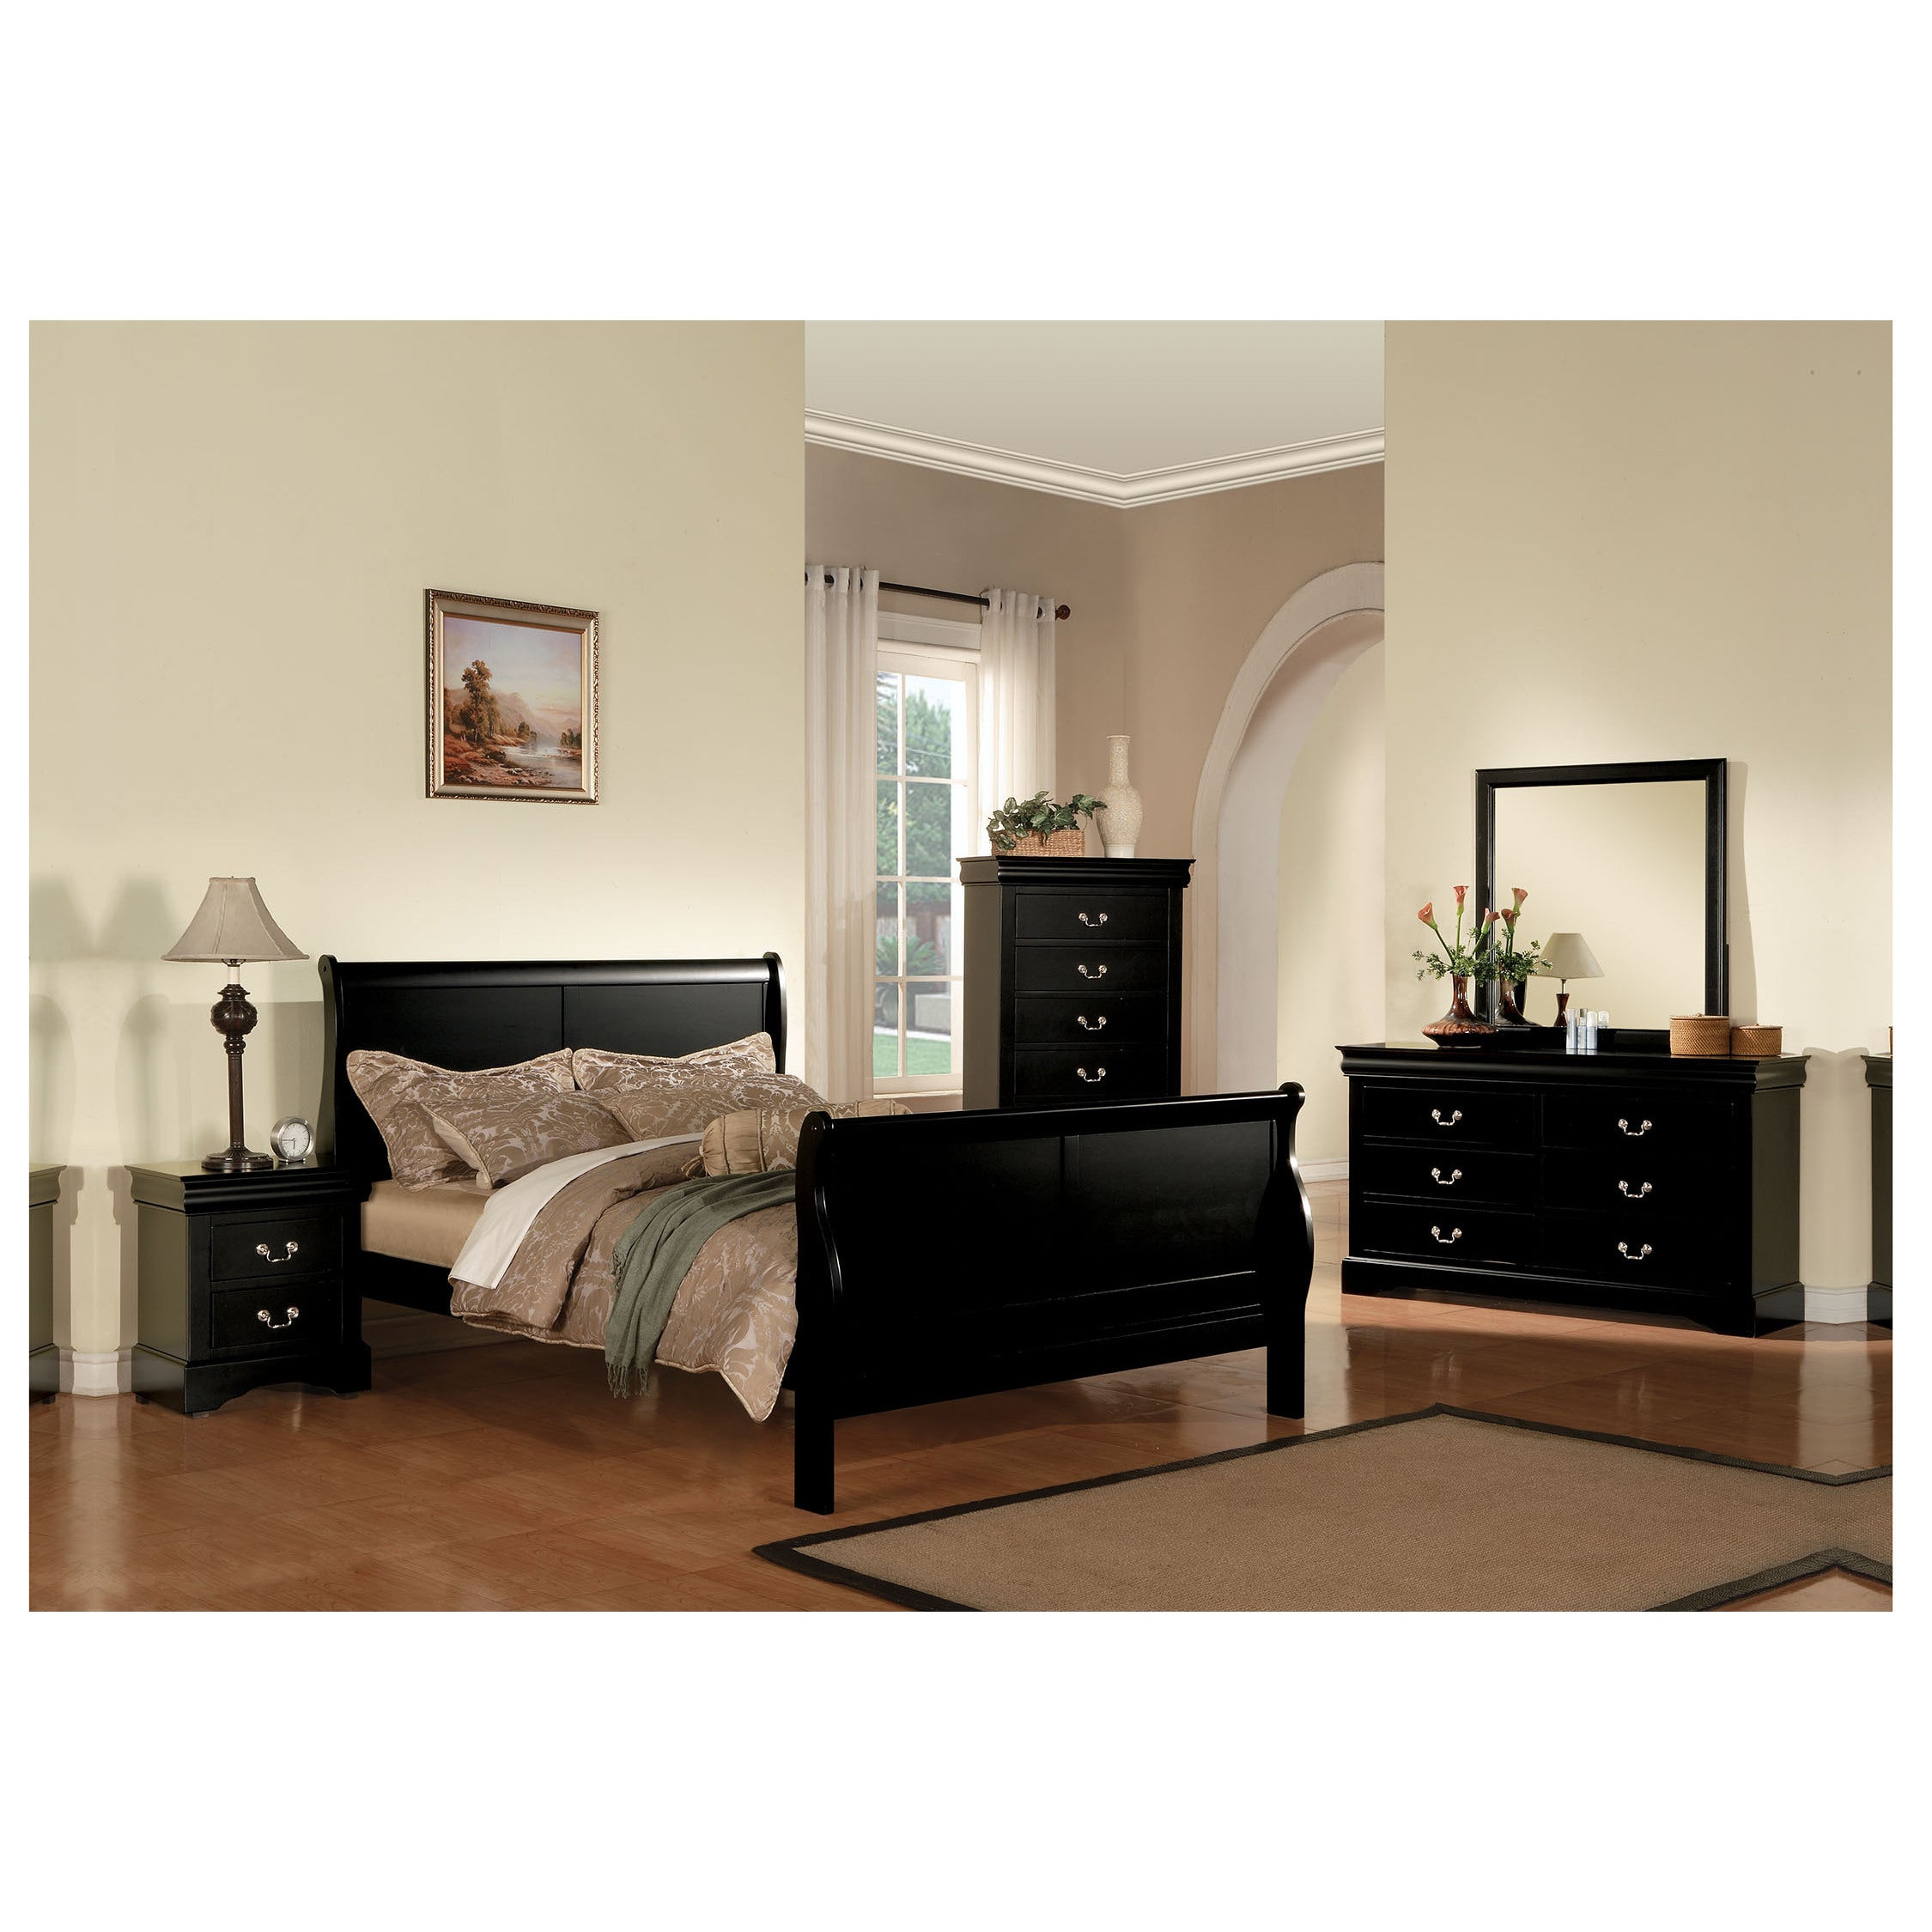 Merveilleux Acme Furniture Louis Philippe III Black 4 Piece Bedroom Set (5 Options  Available)